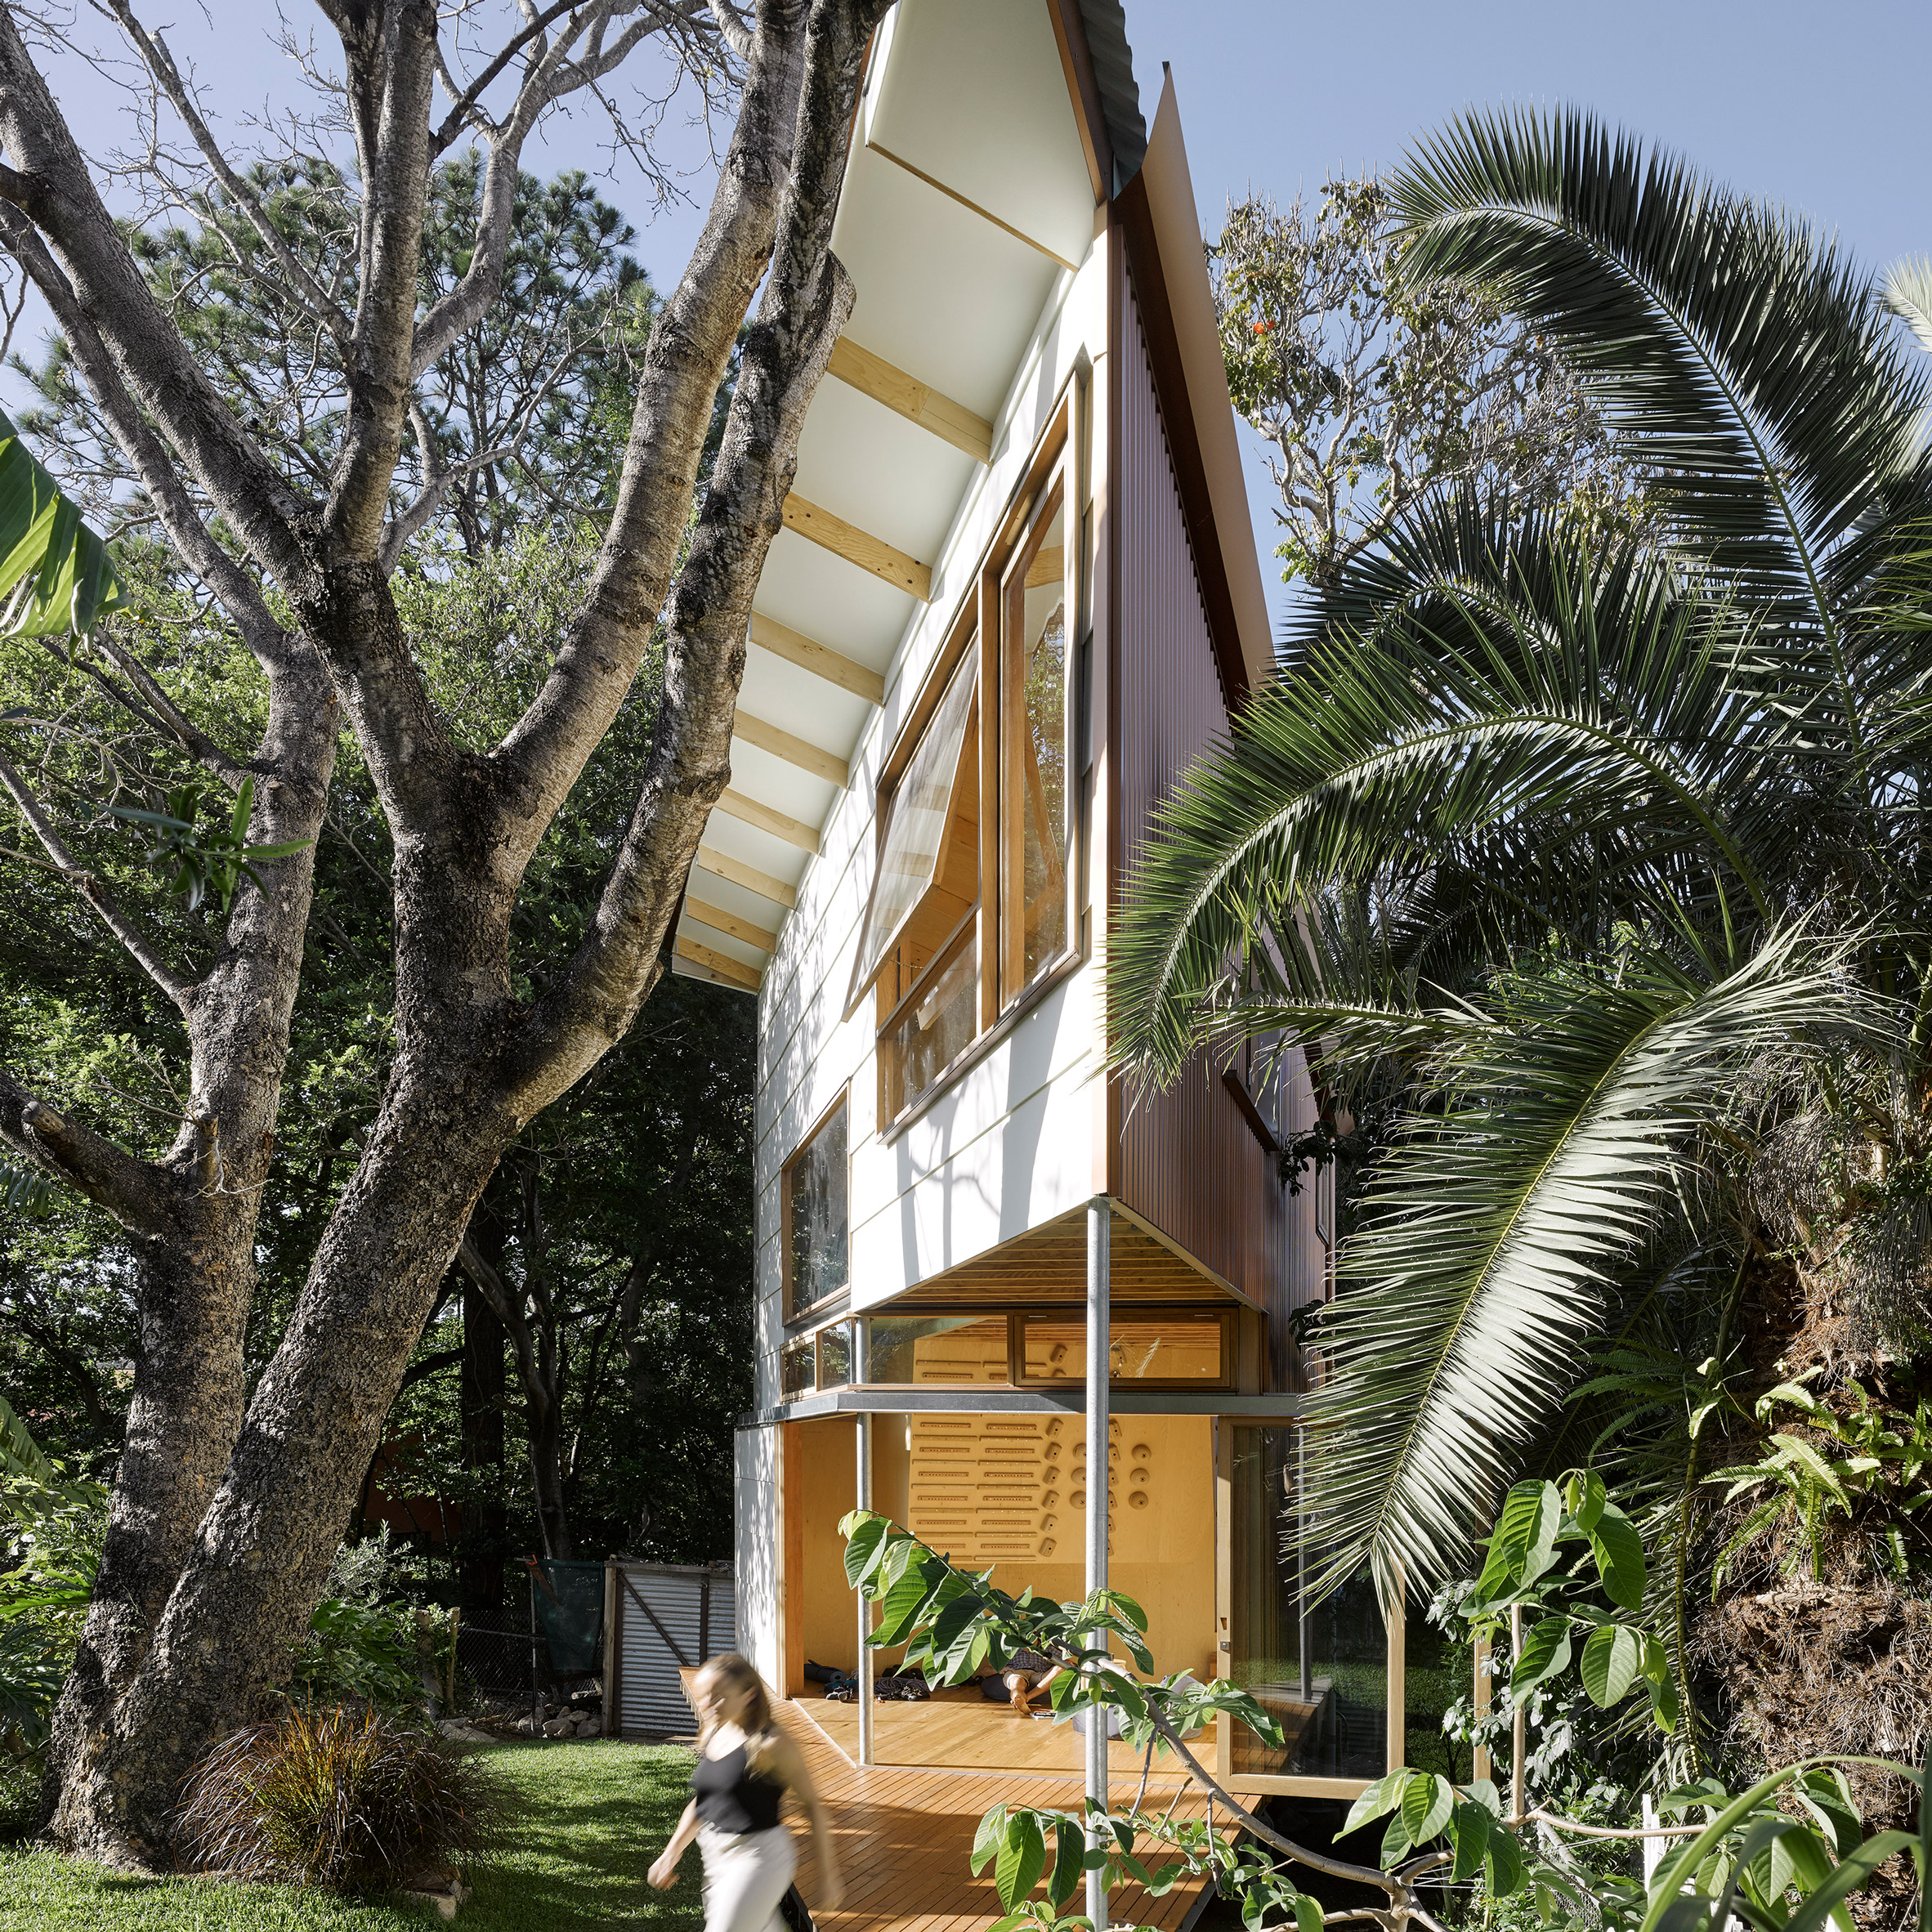 Extremely pointed garden room features a treehouse like